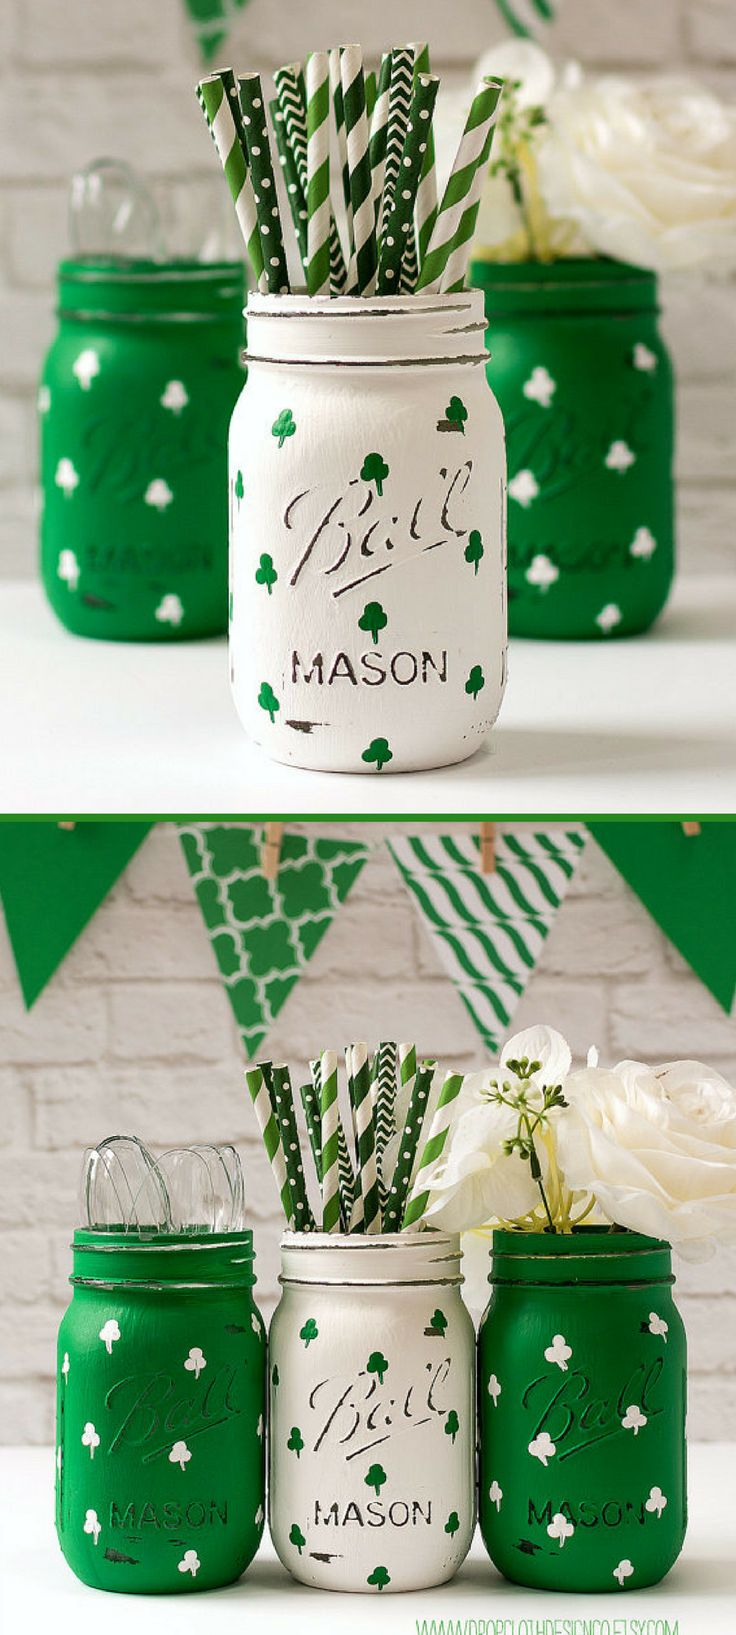 Two of my favorite things...Mason Jars and the color Green.  These Shamrock painted Mason Jars would make great accent pieces to our St. Patrick's Day Home Decor.  #Ad #stpatricksday #masonjars #homedecor